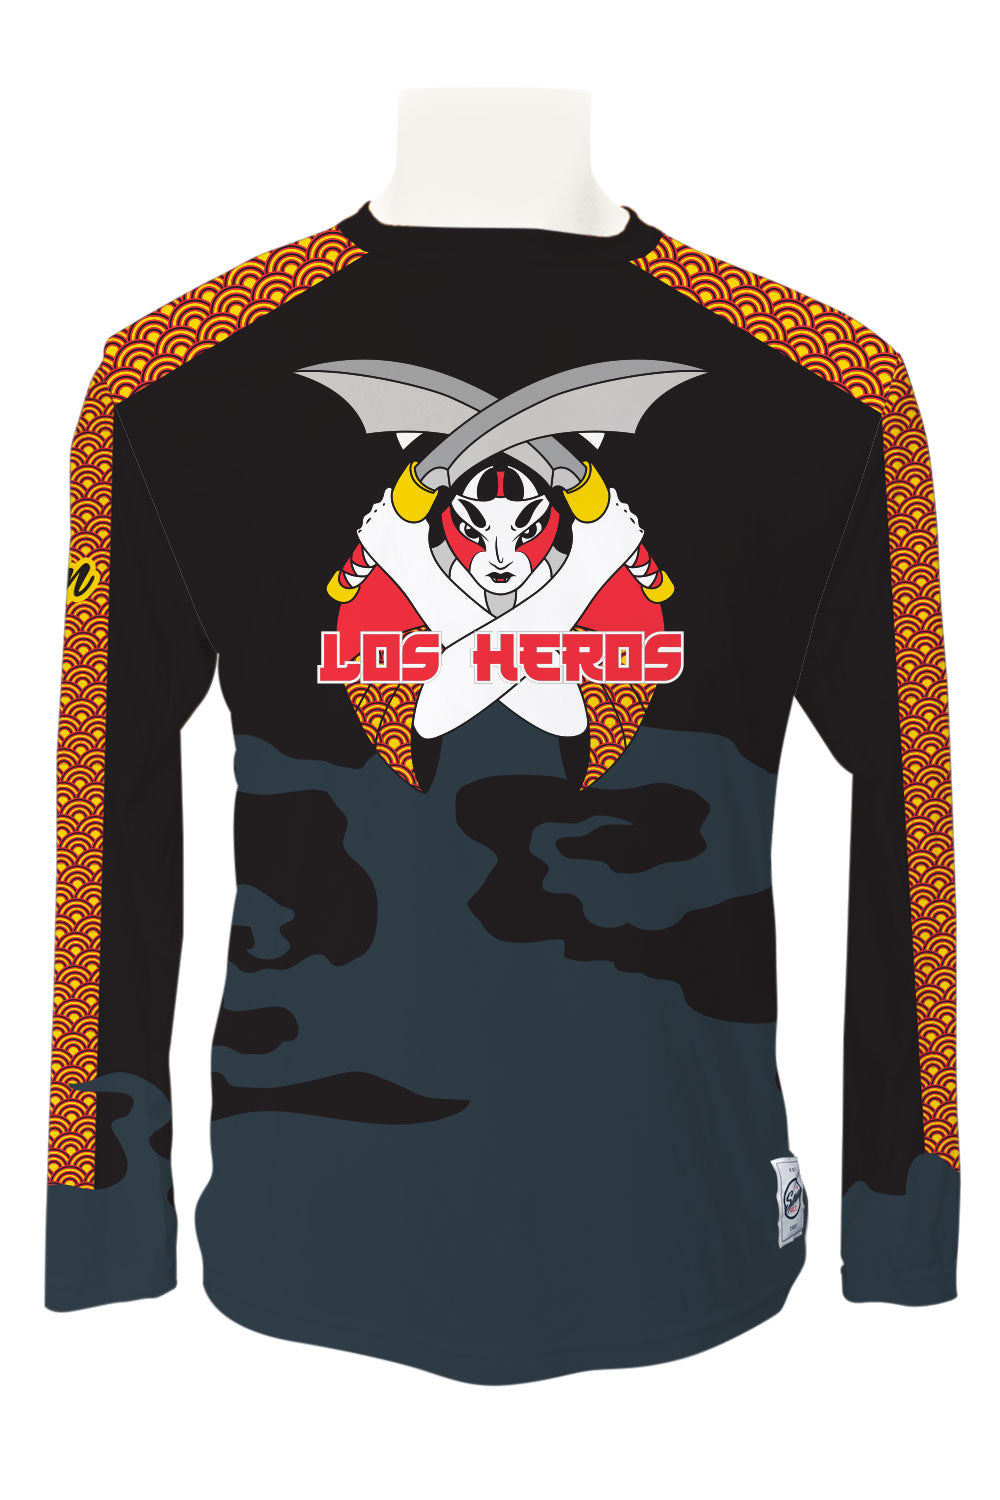 Los Heros Full Sub Long Sleeve